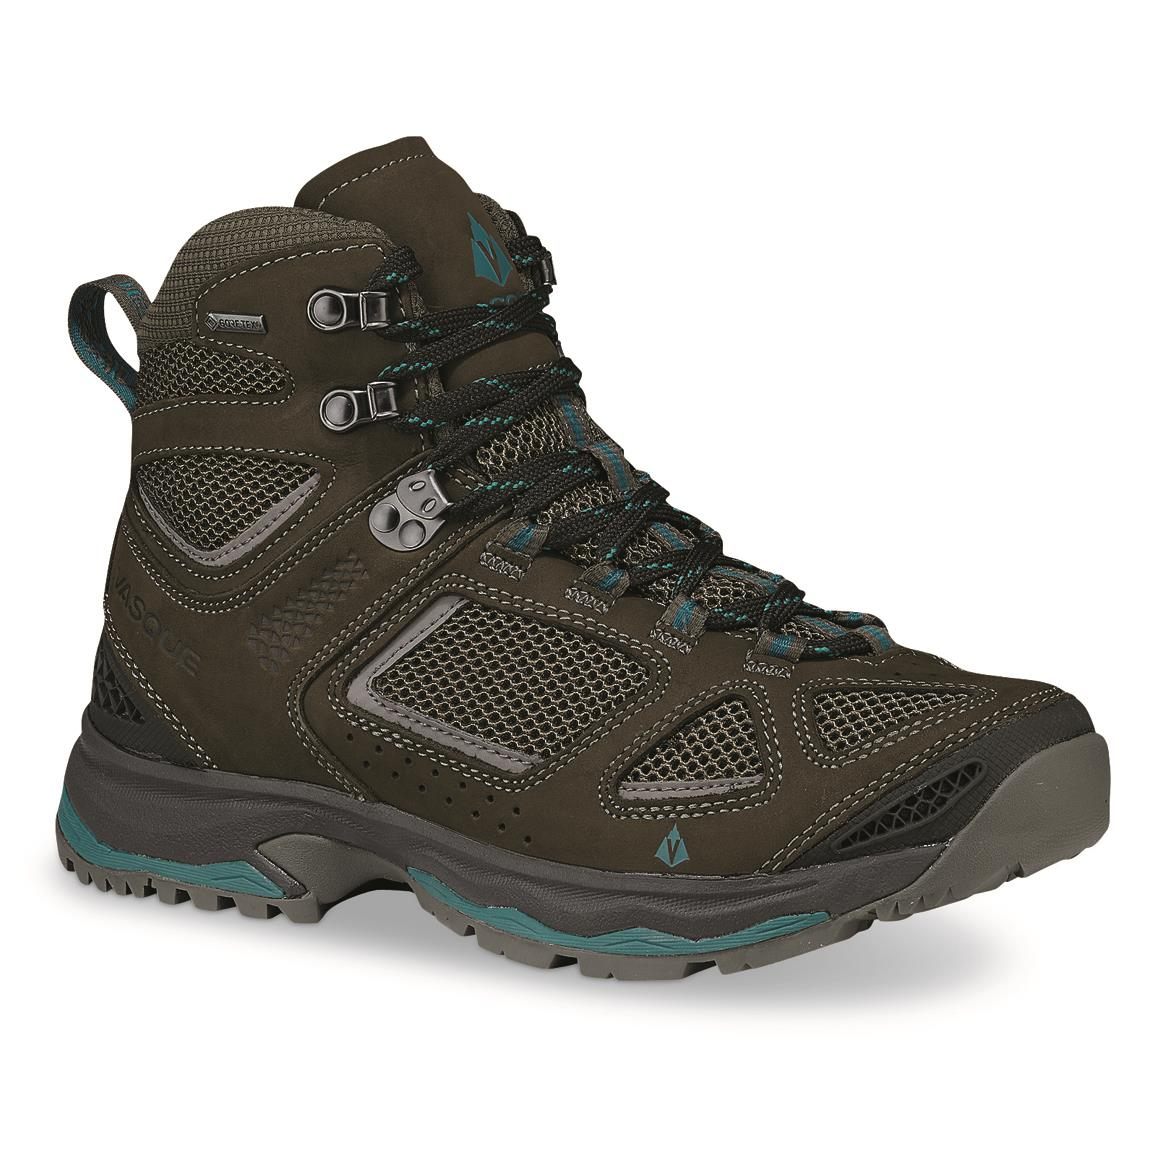 6714a19144b7a Vasque Women's Breeze III GORE-TEX Waterproof Hiking Boots